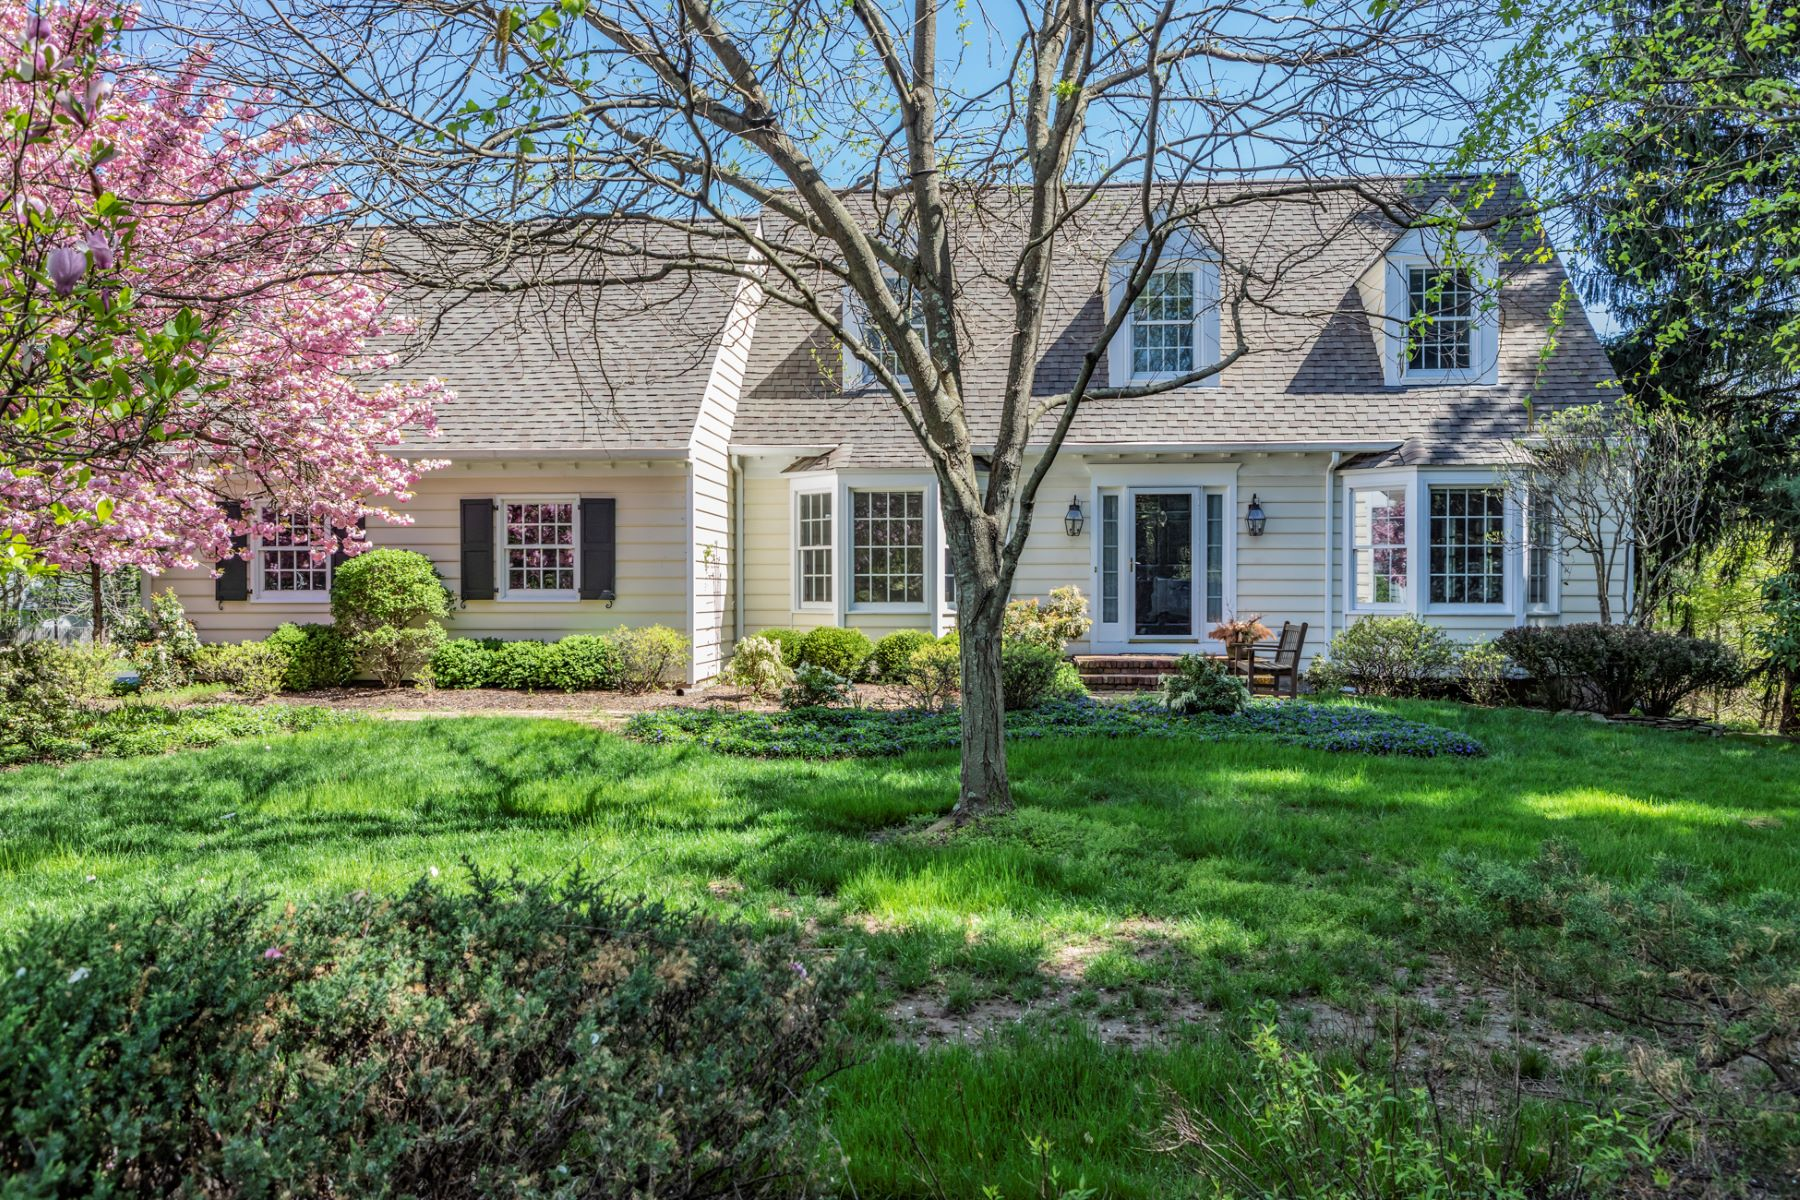 Single Family Homes for Sale at Tucked On A Beloved Cul-de-sac 9 Chadwell Court Pennington, New Jersey 08534 United States